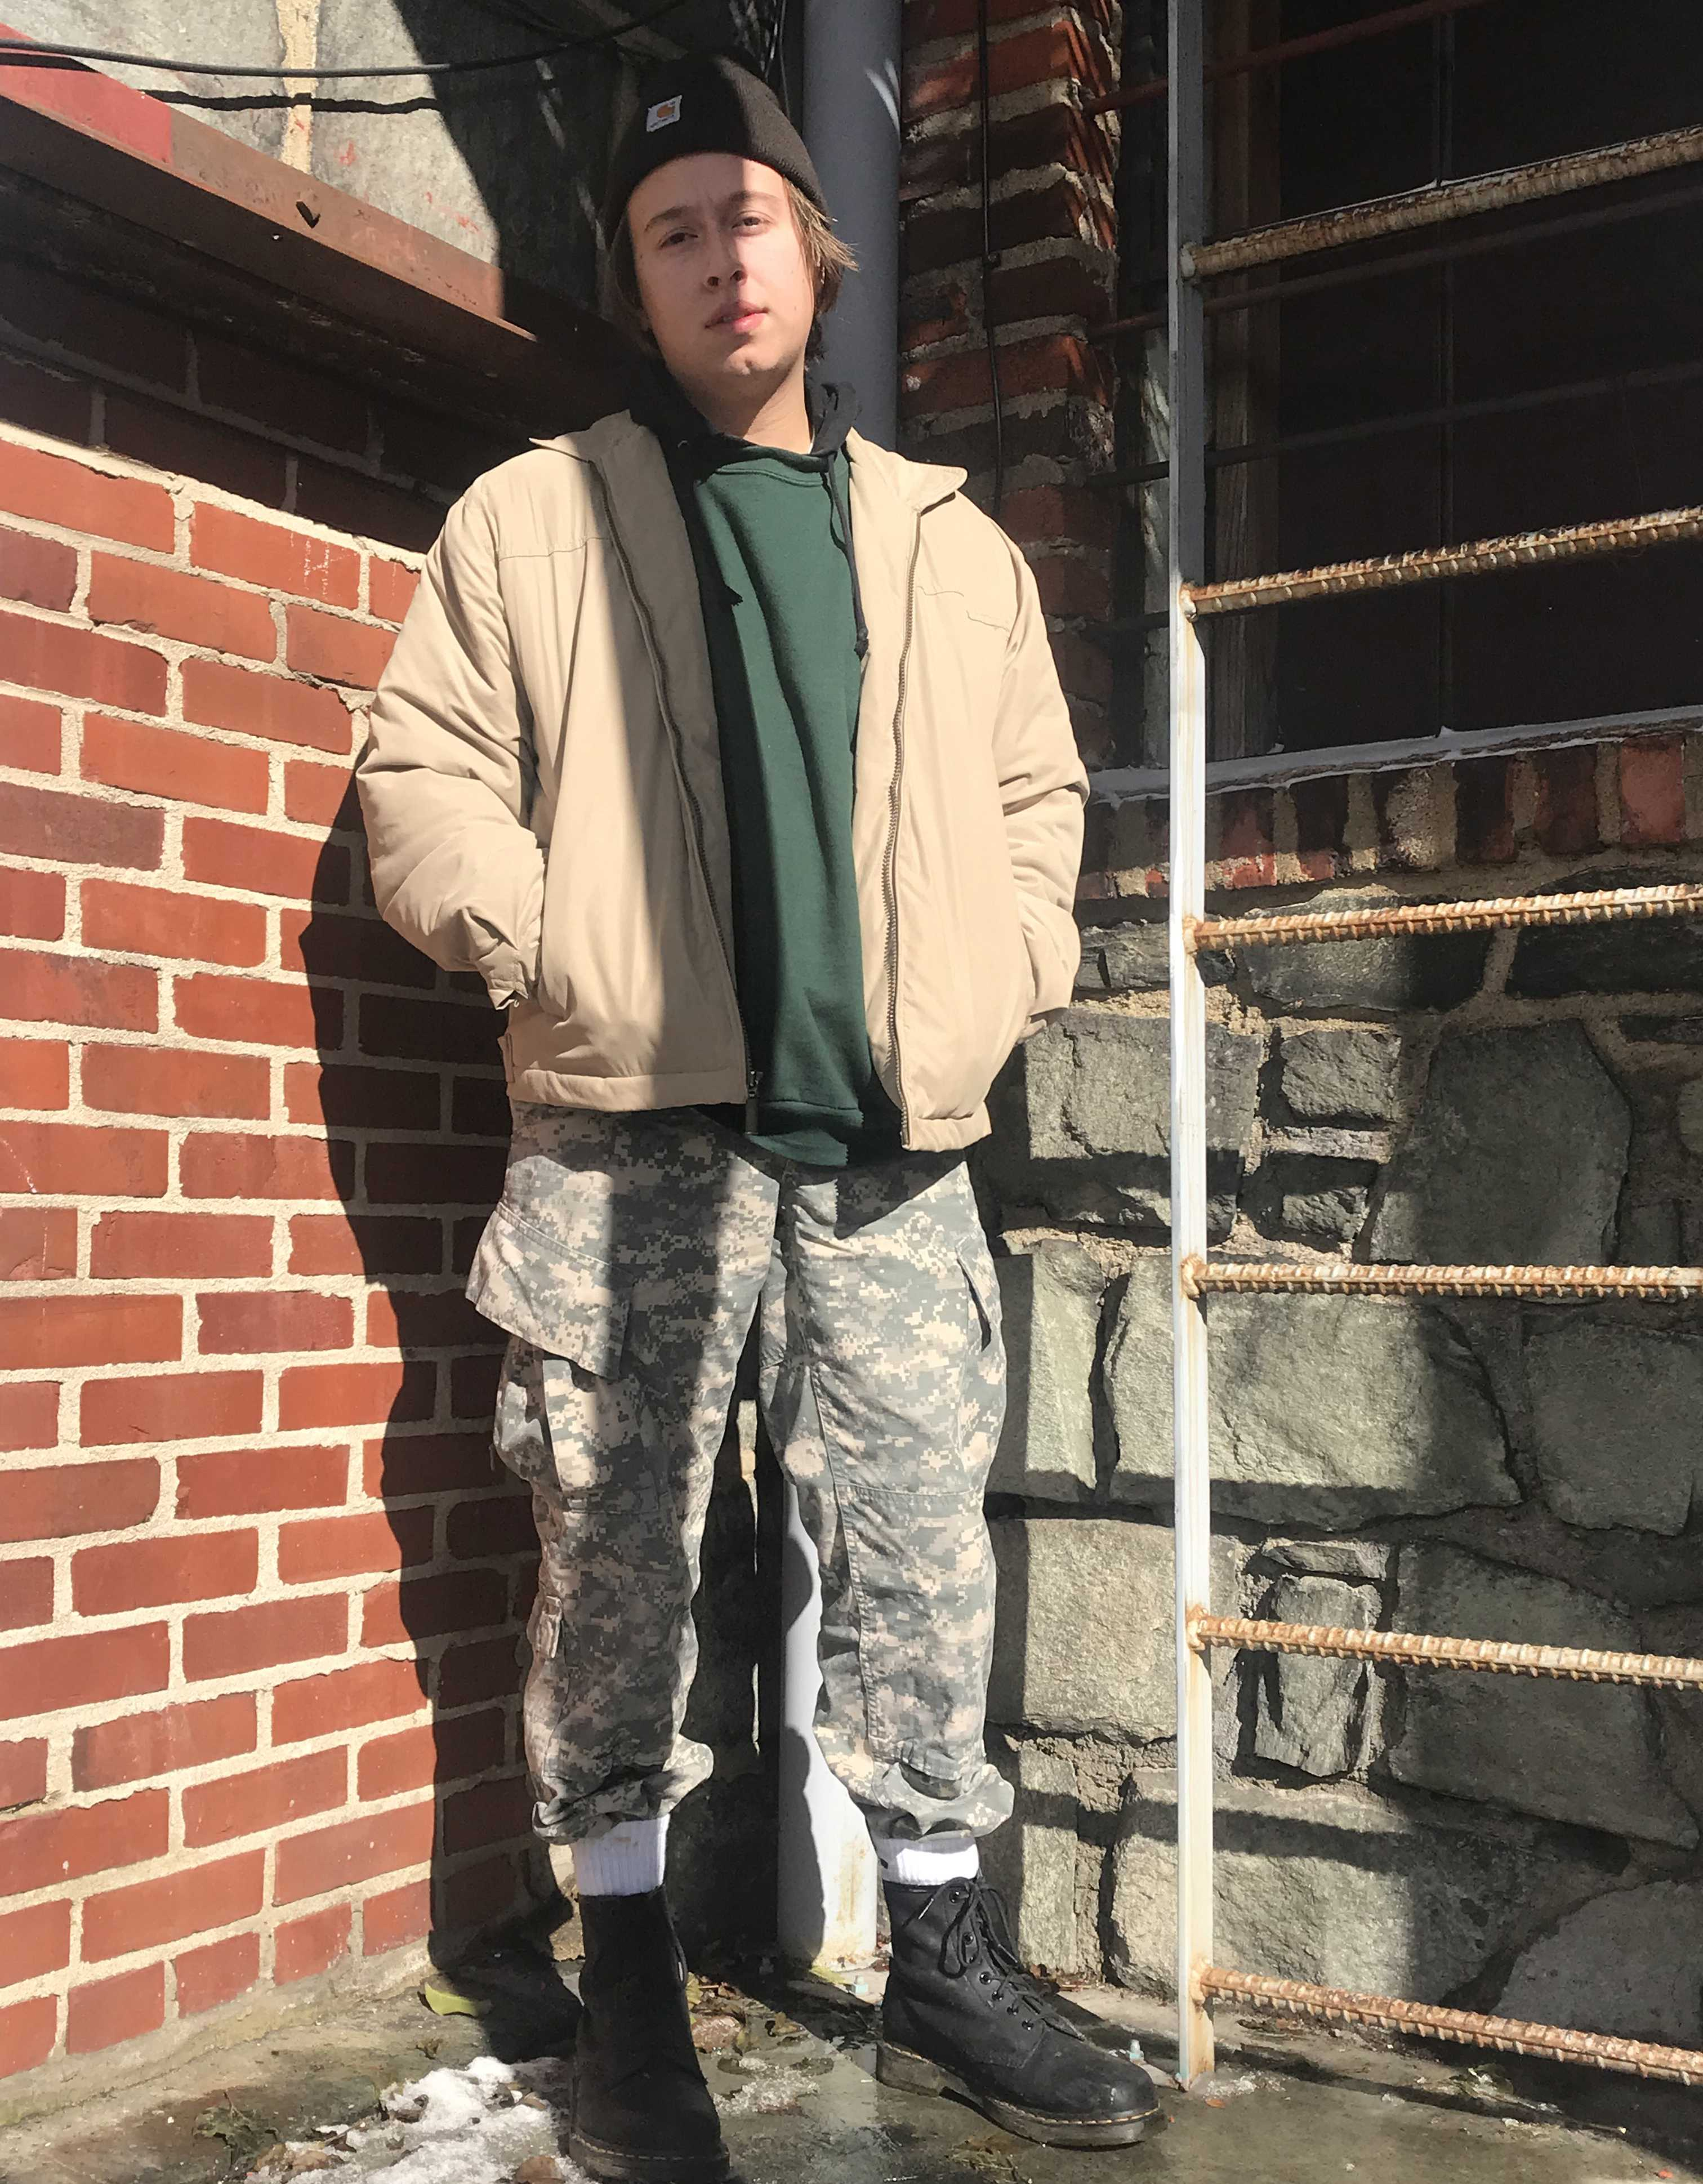 Karl Boynton, a junior music industry studies major stays comfortable while still sporting a scumbro fit representing skate culture and it's evolution.